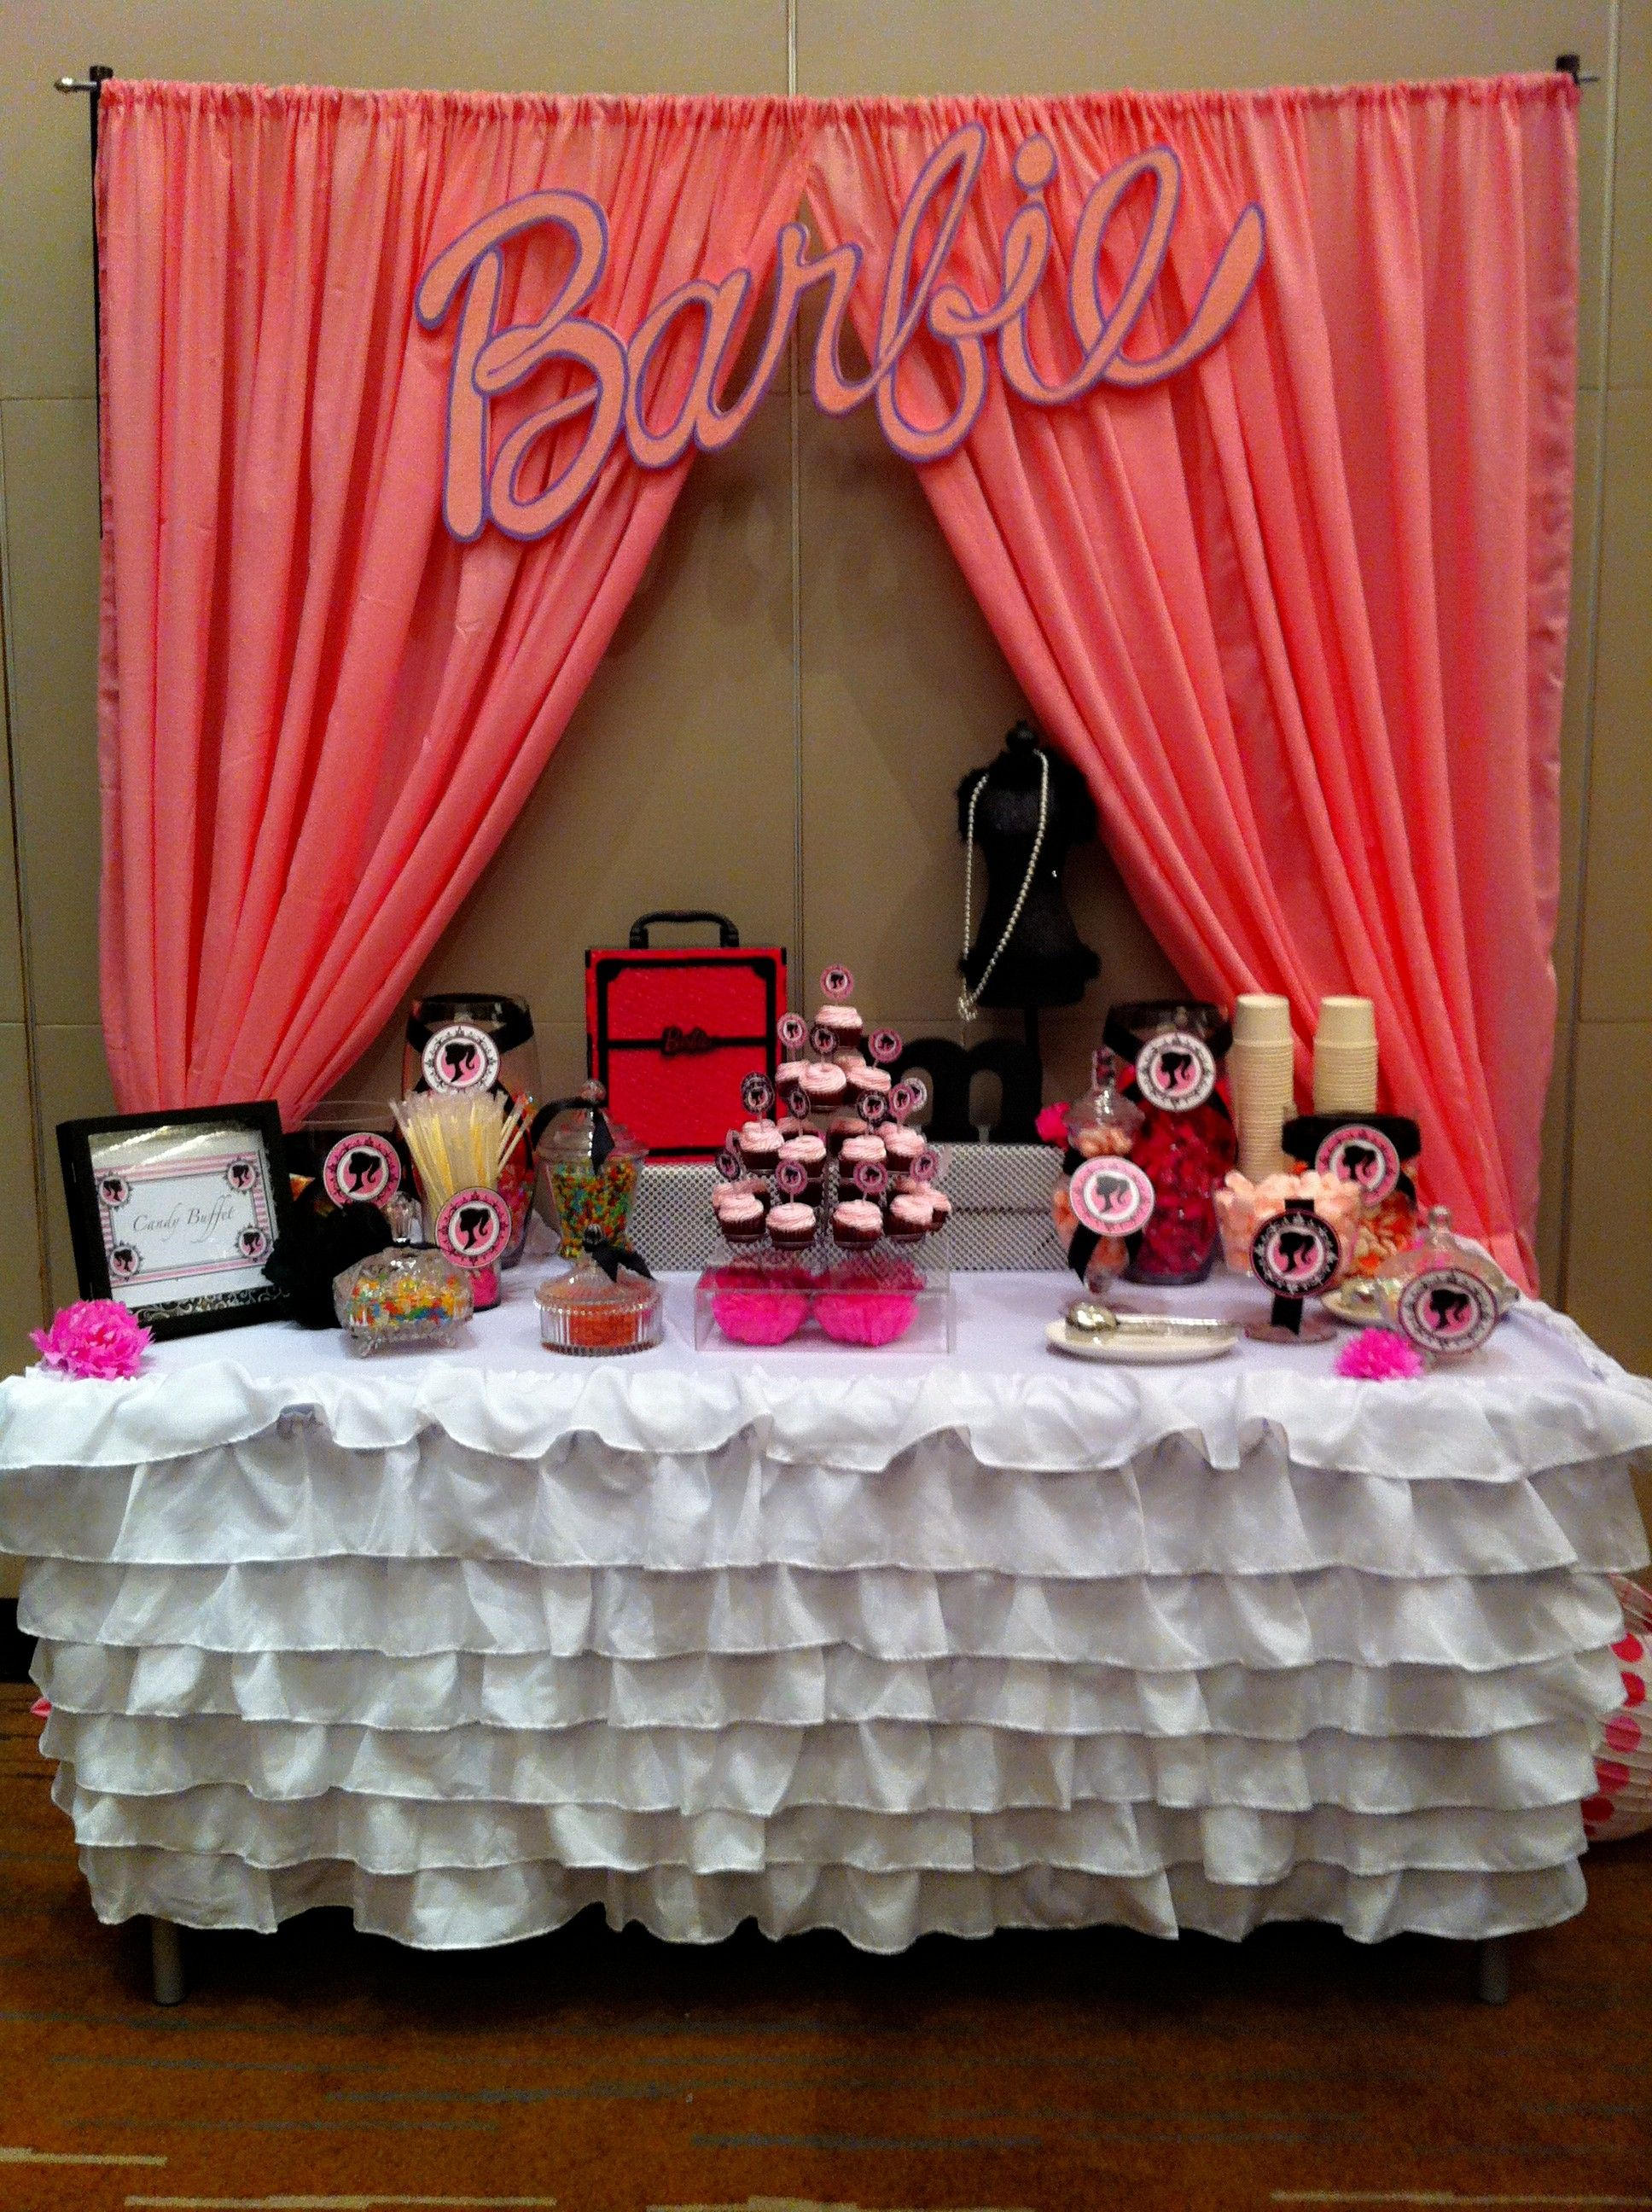 Magnificent Vintage Barbie Candy Buffet By Sweets N Treats Interior Design Ideas Clesiryabchikinfo